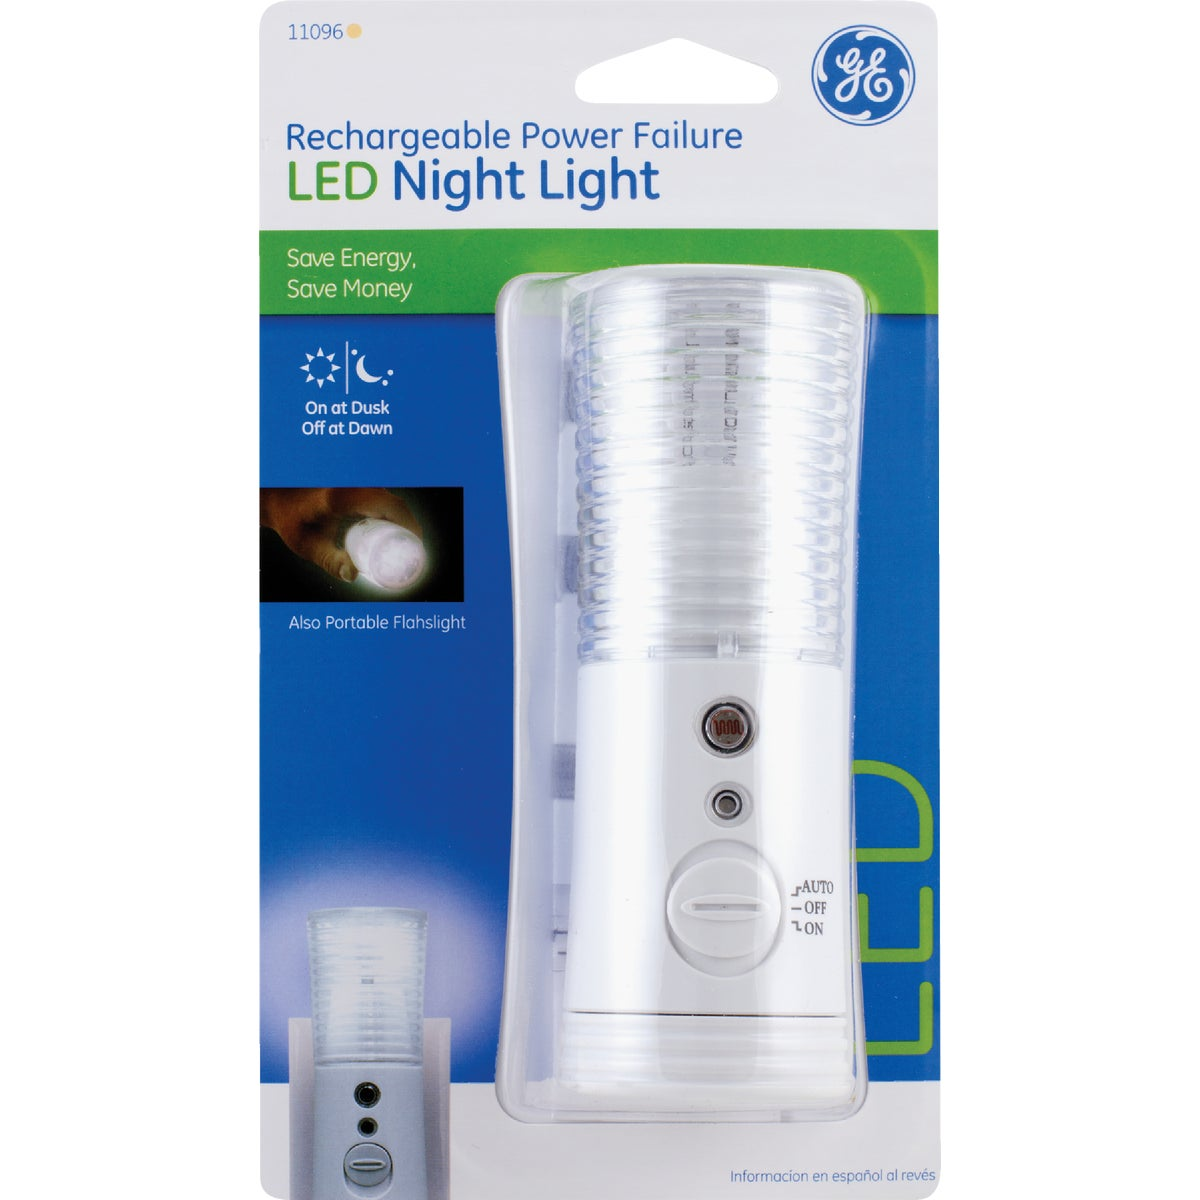 POWER FAILURE NIGHT LT - 11096 by Jasco Products Co